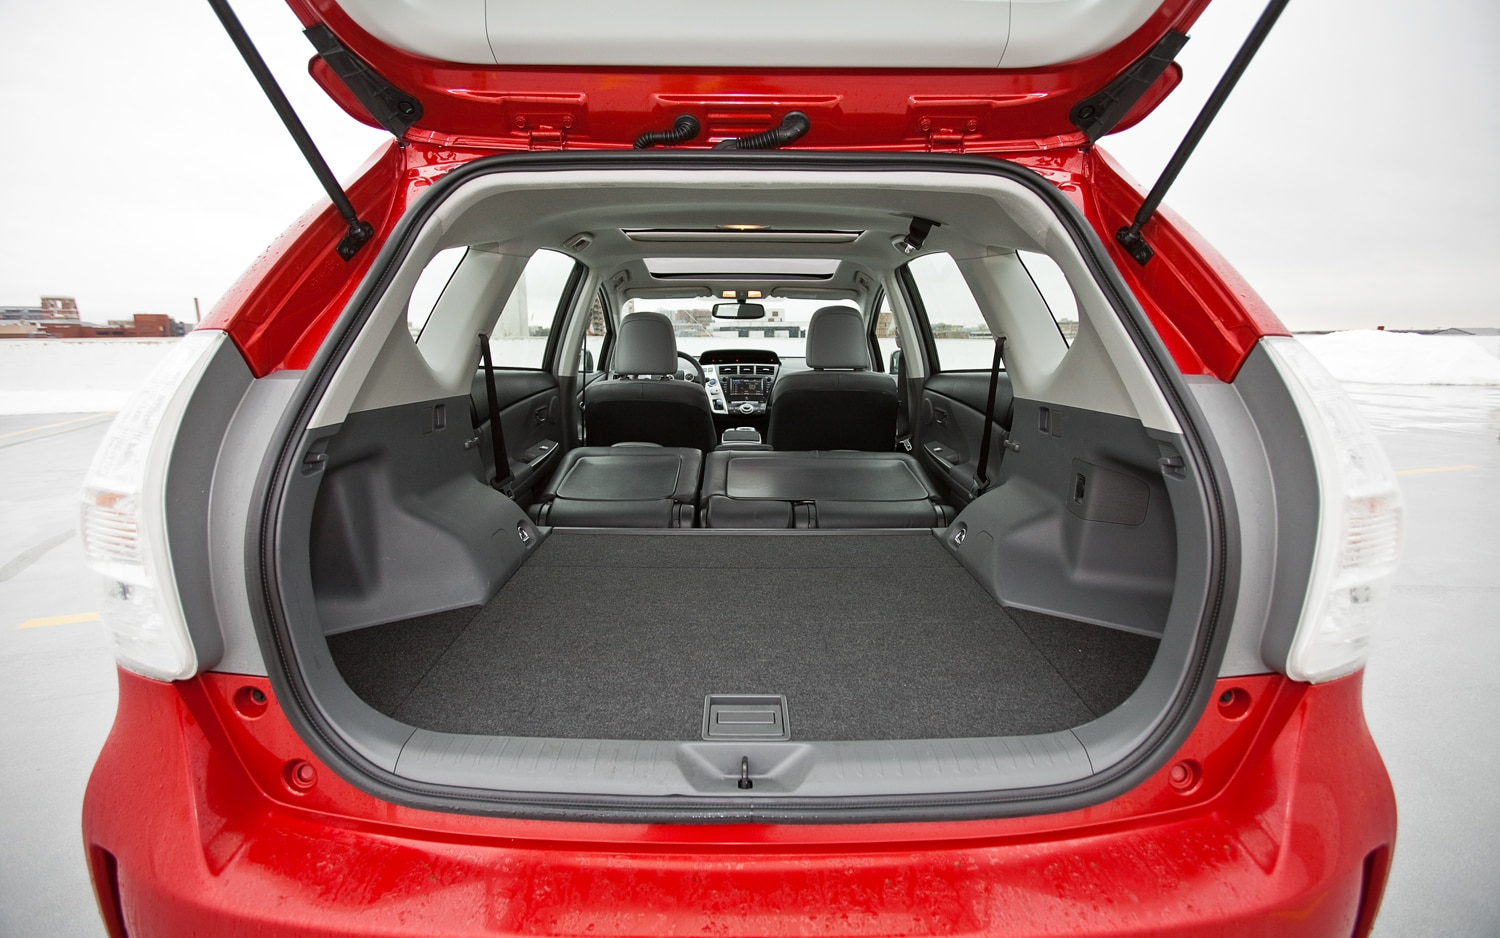 prius v battery between seats